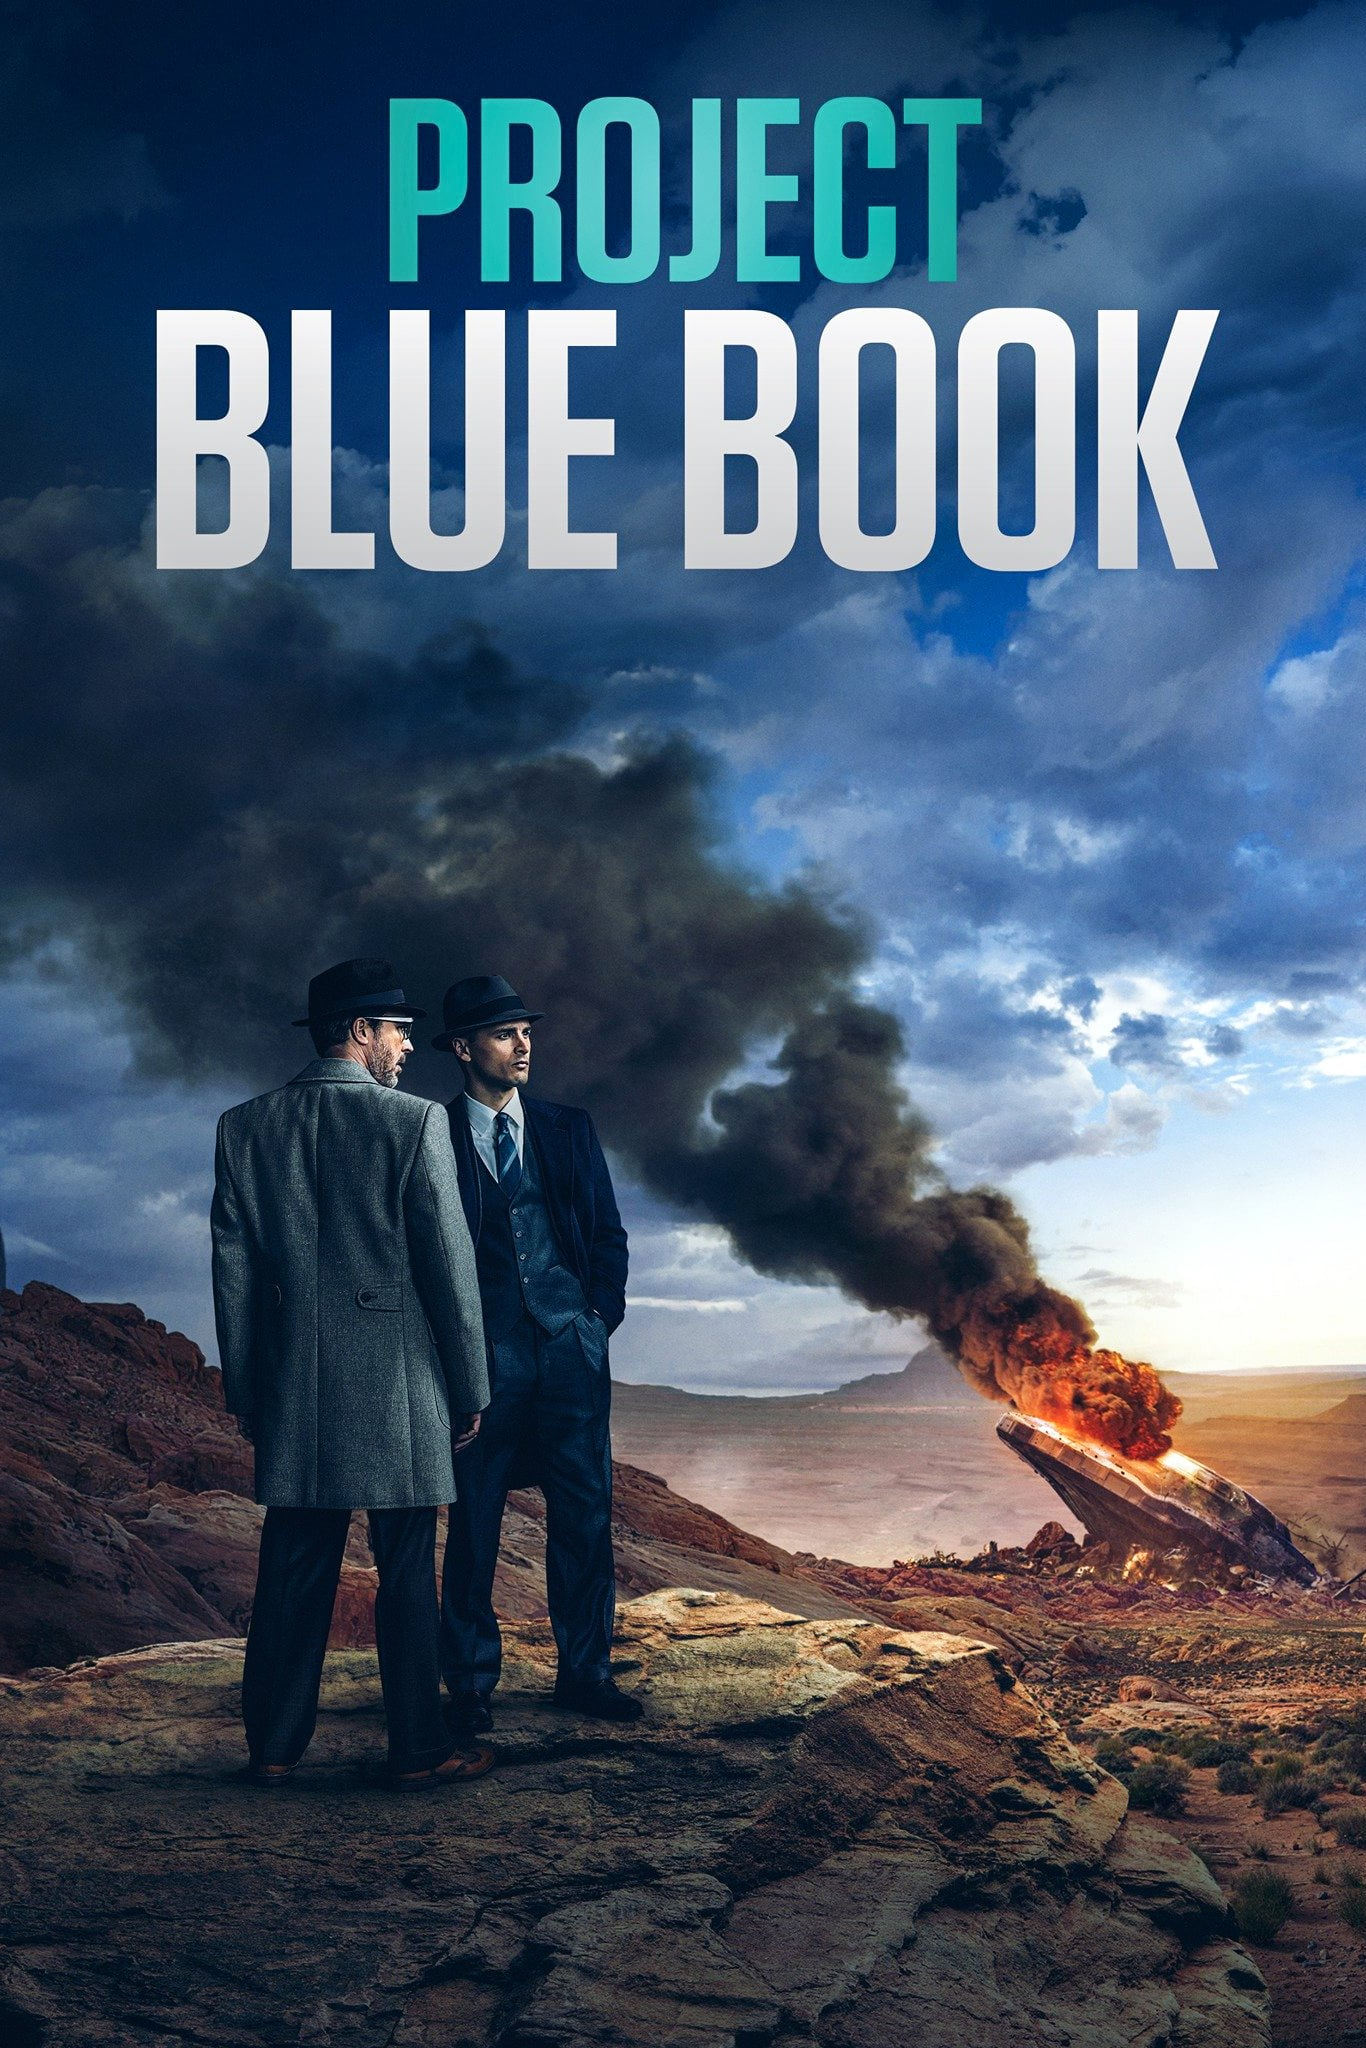 Project Blue Book rating